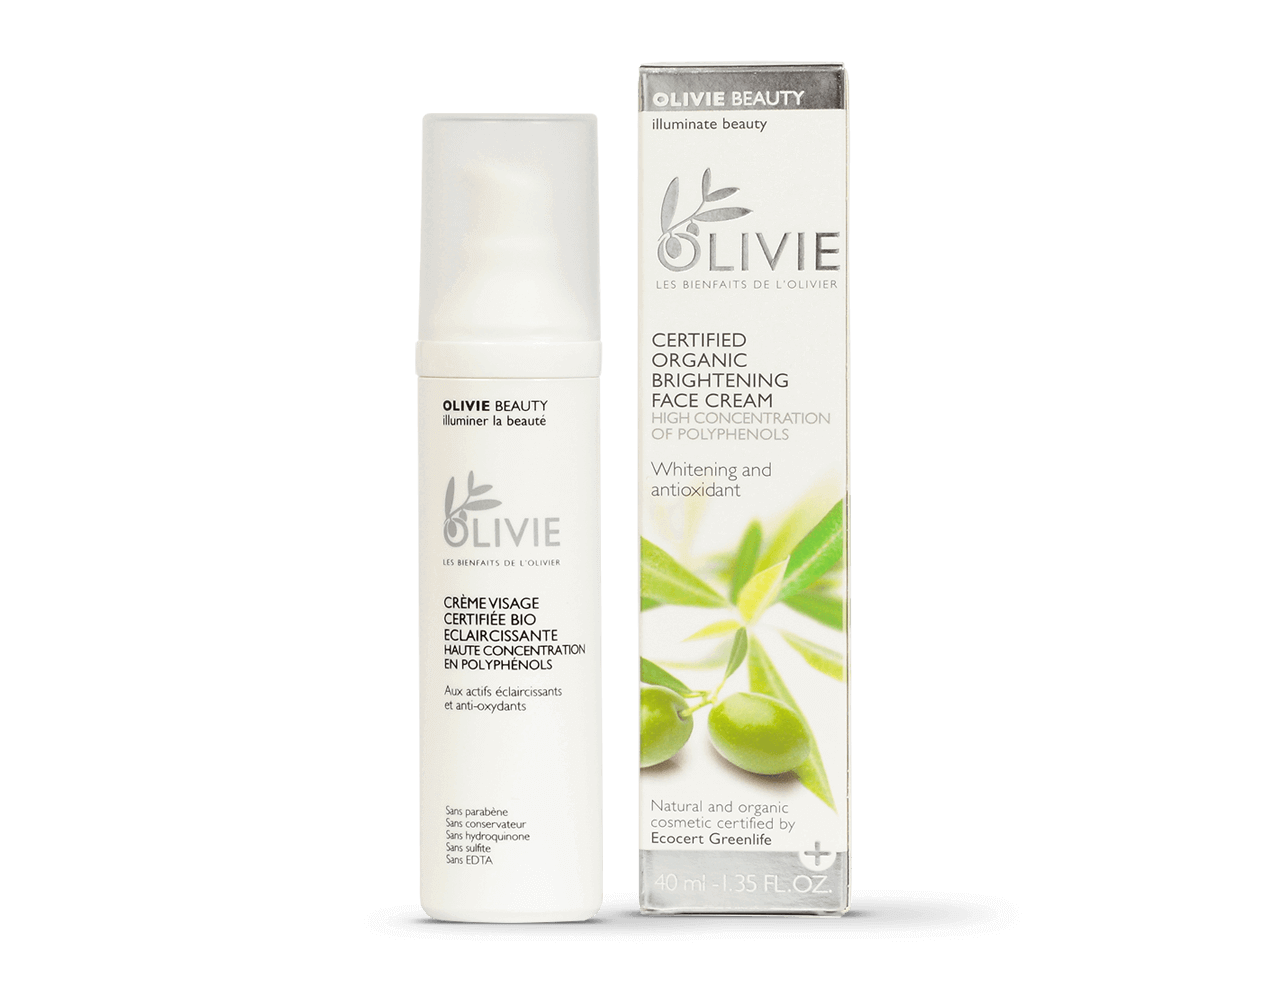 OLIVIE BEAUTY is the ultimate organic certified face cream with high concentration of polyphenols.